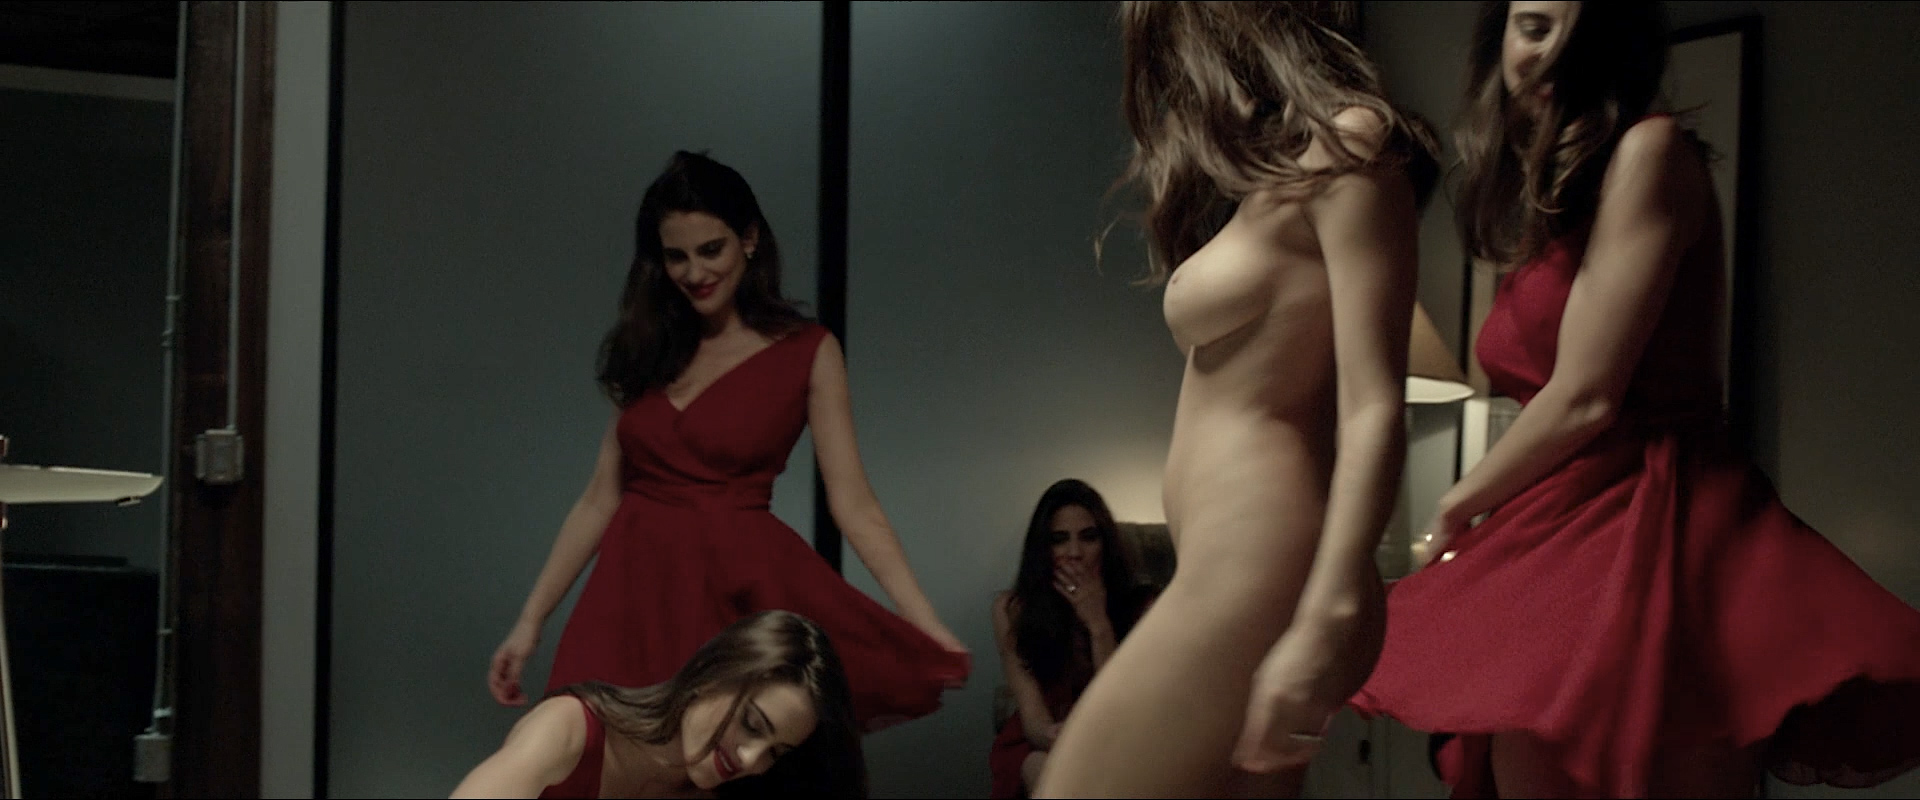 Candy Yuen Nude Awesome luisa moraes nude butt and nude boobs - solace (2015) hd 1080p